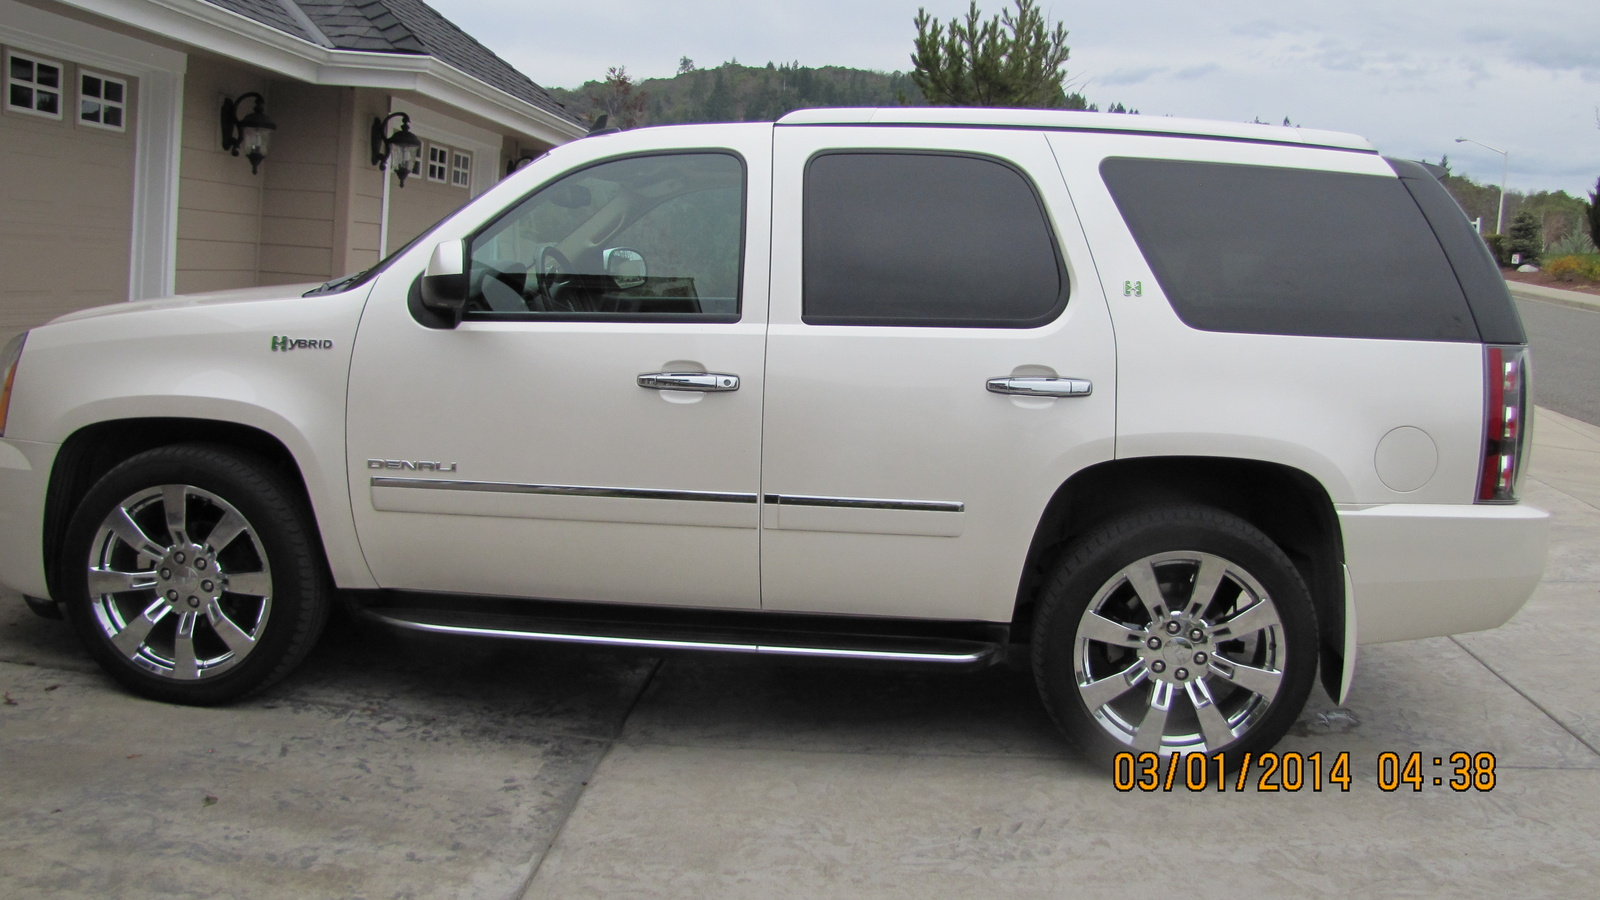 used gmc yukon denali hybrid for sale. Black Bedroom Furniture Sets. Home Design Ideas